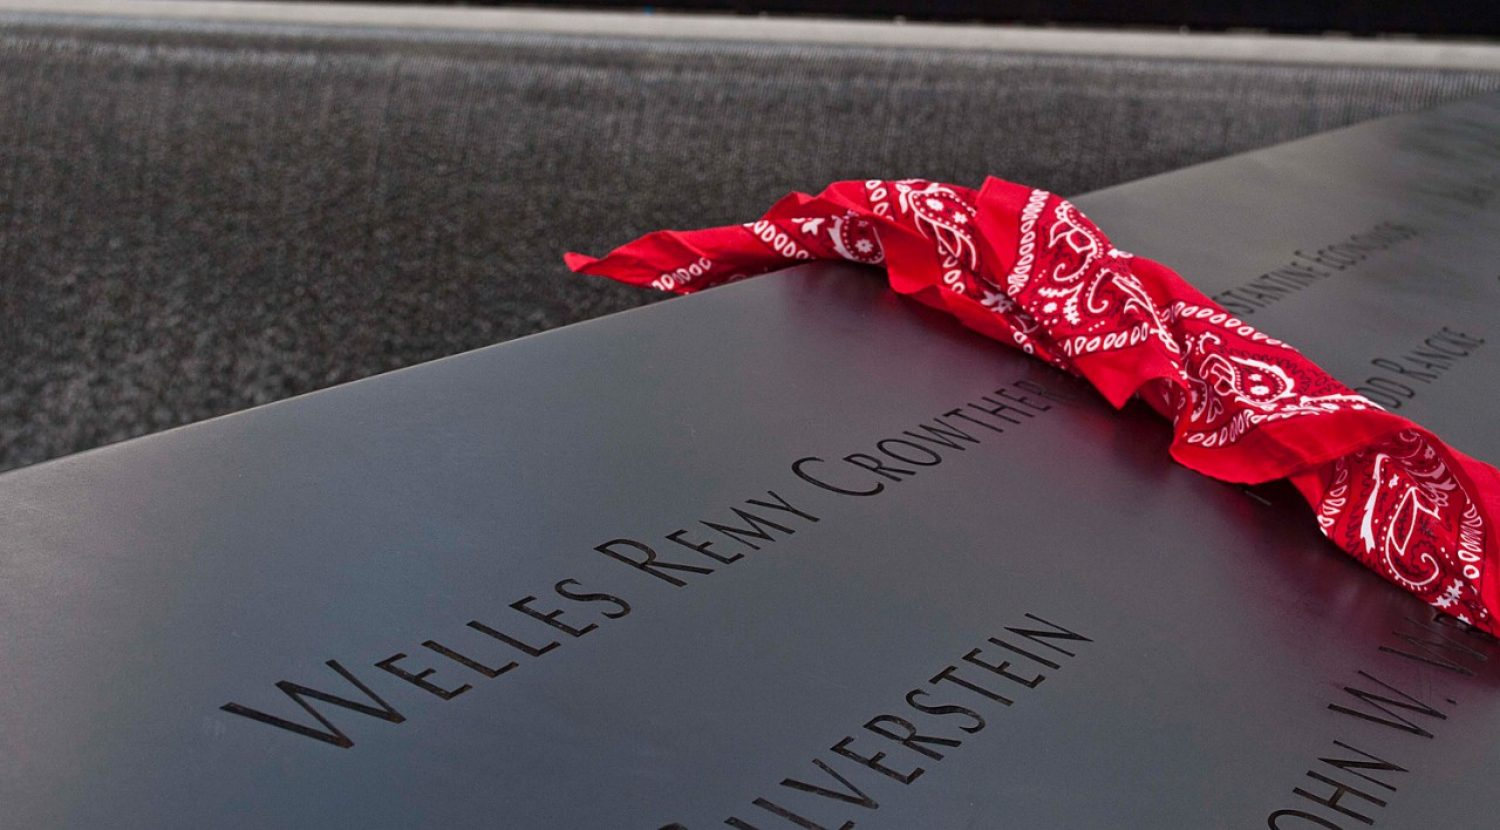 A red bandanna beside Welles Crowther's name on the 9-11 memorial